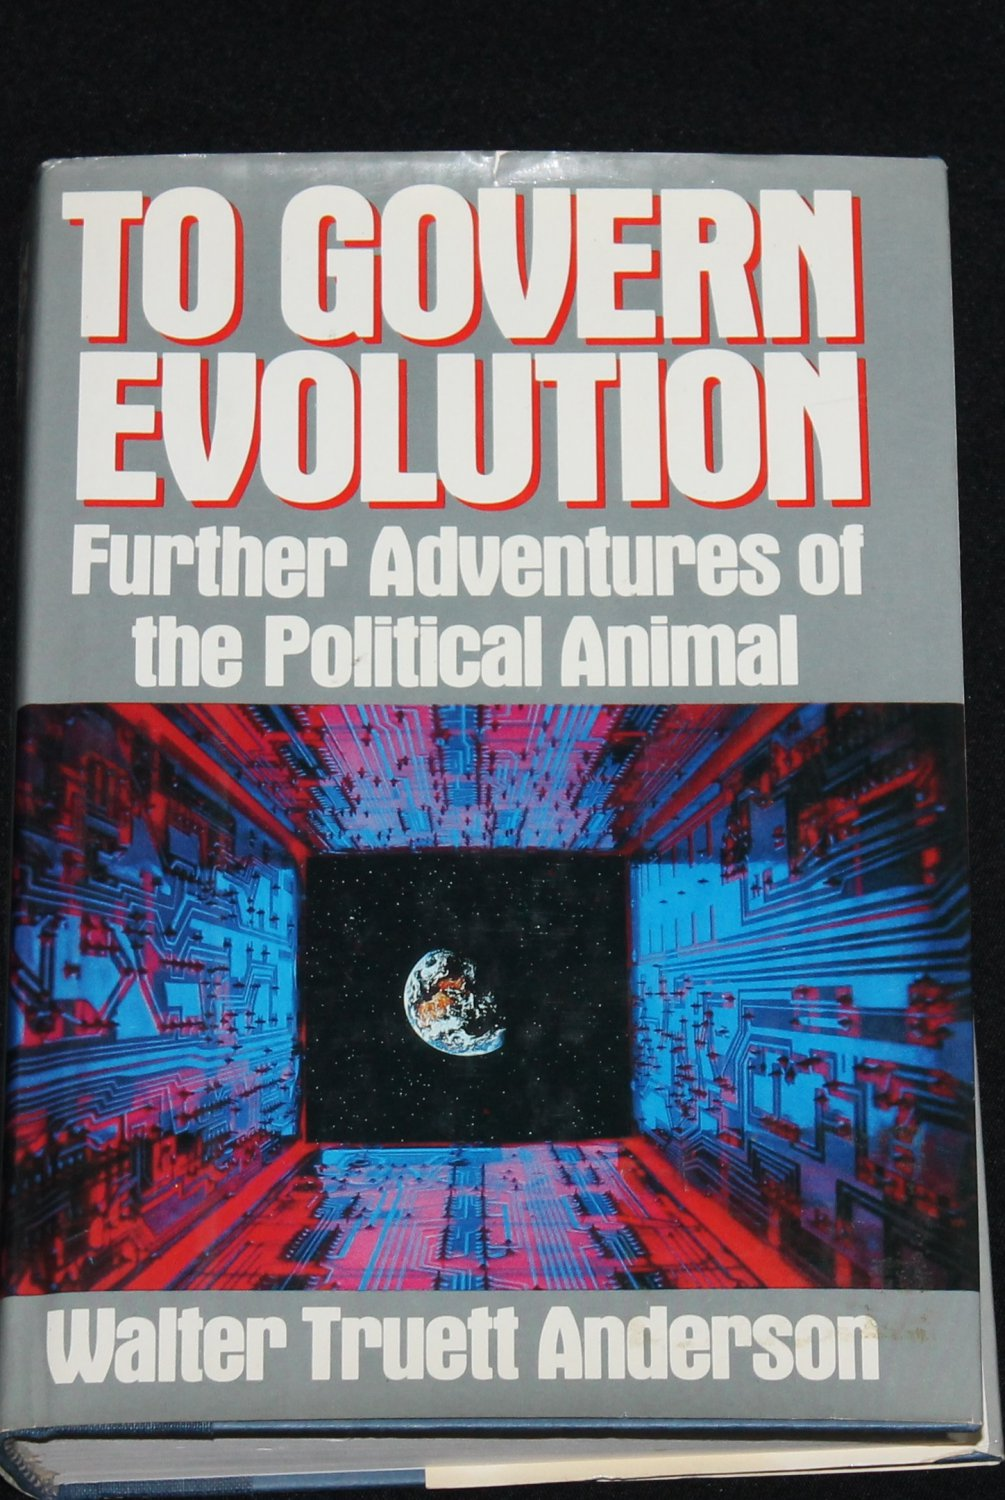 To Govern Evolution - Further Adventures of the Political Animal environment Walker Truett Anderson